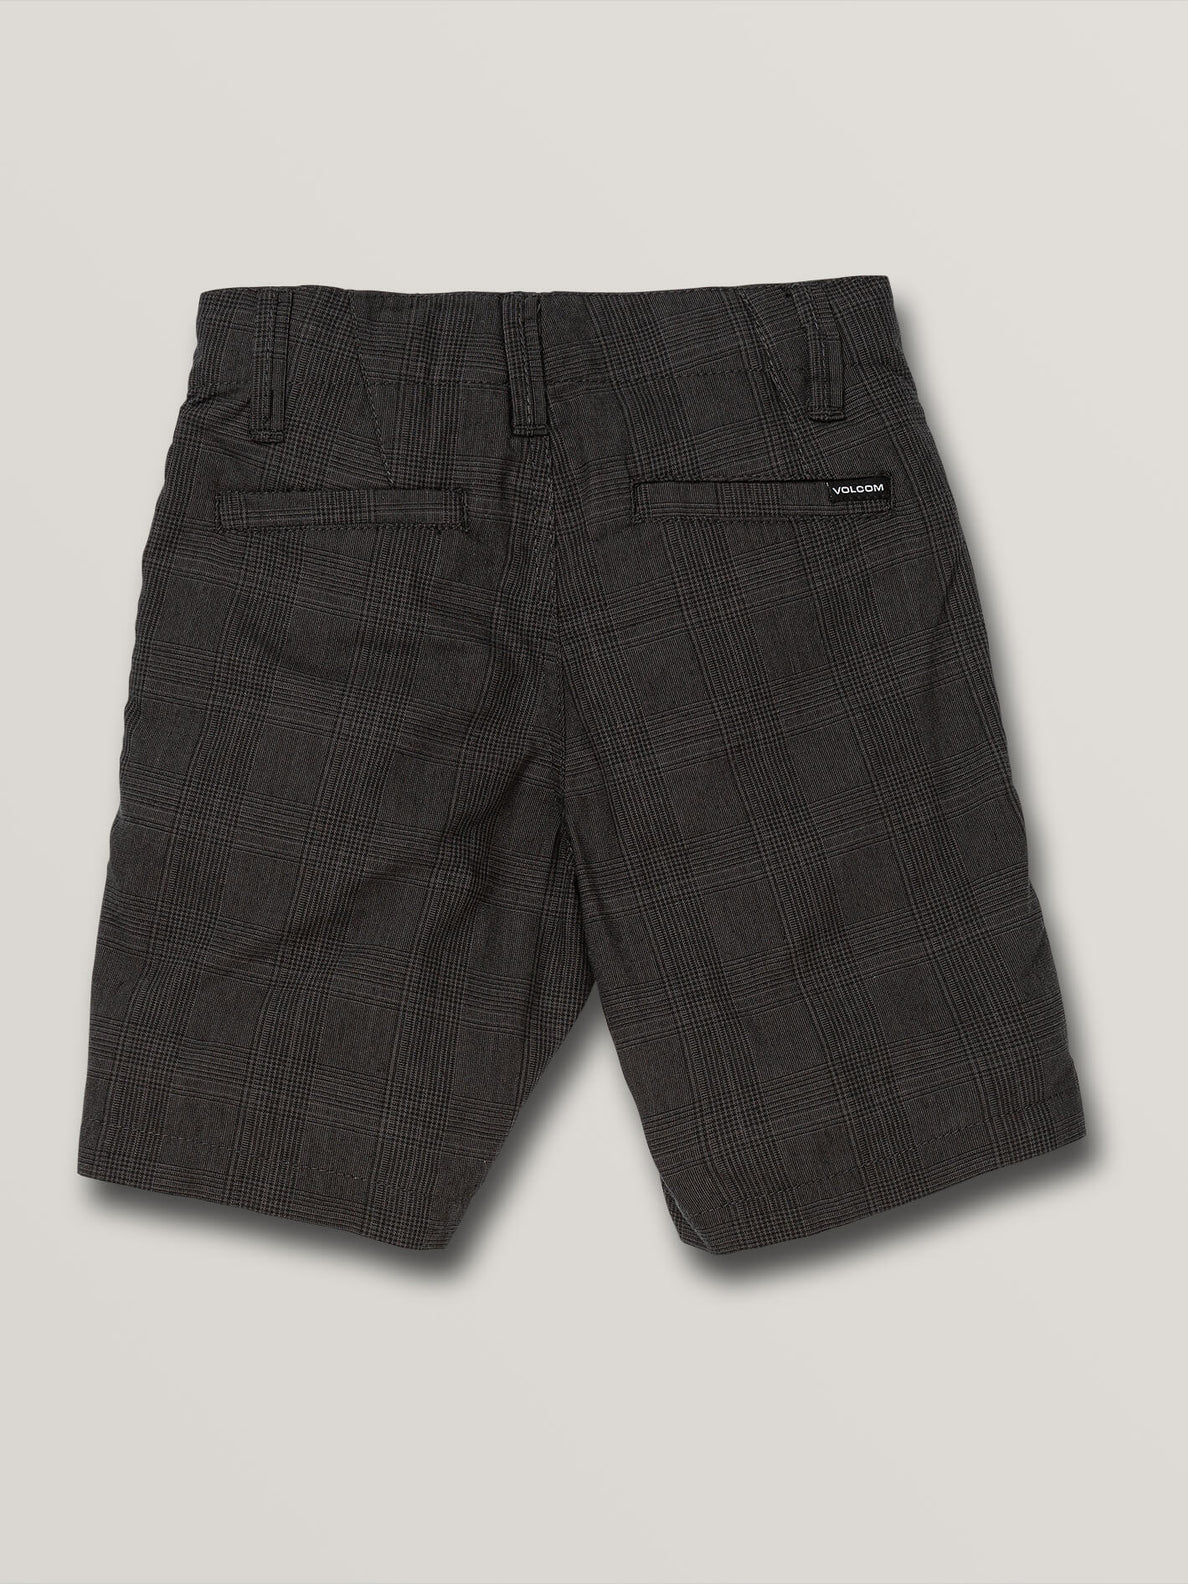 THE DOWN LO SHORT (Y0912001_BLK) [B]